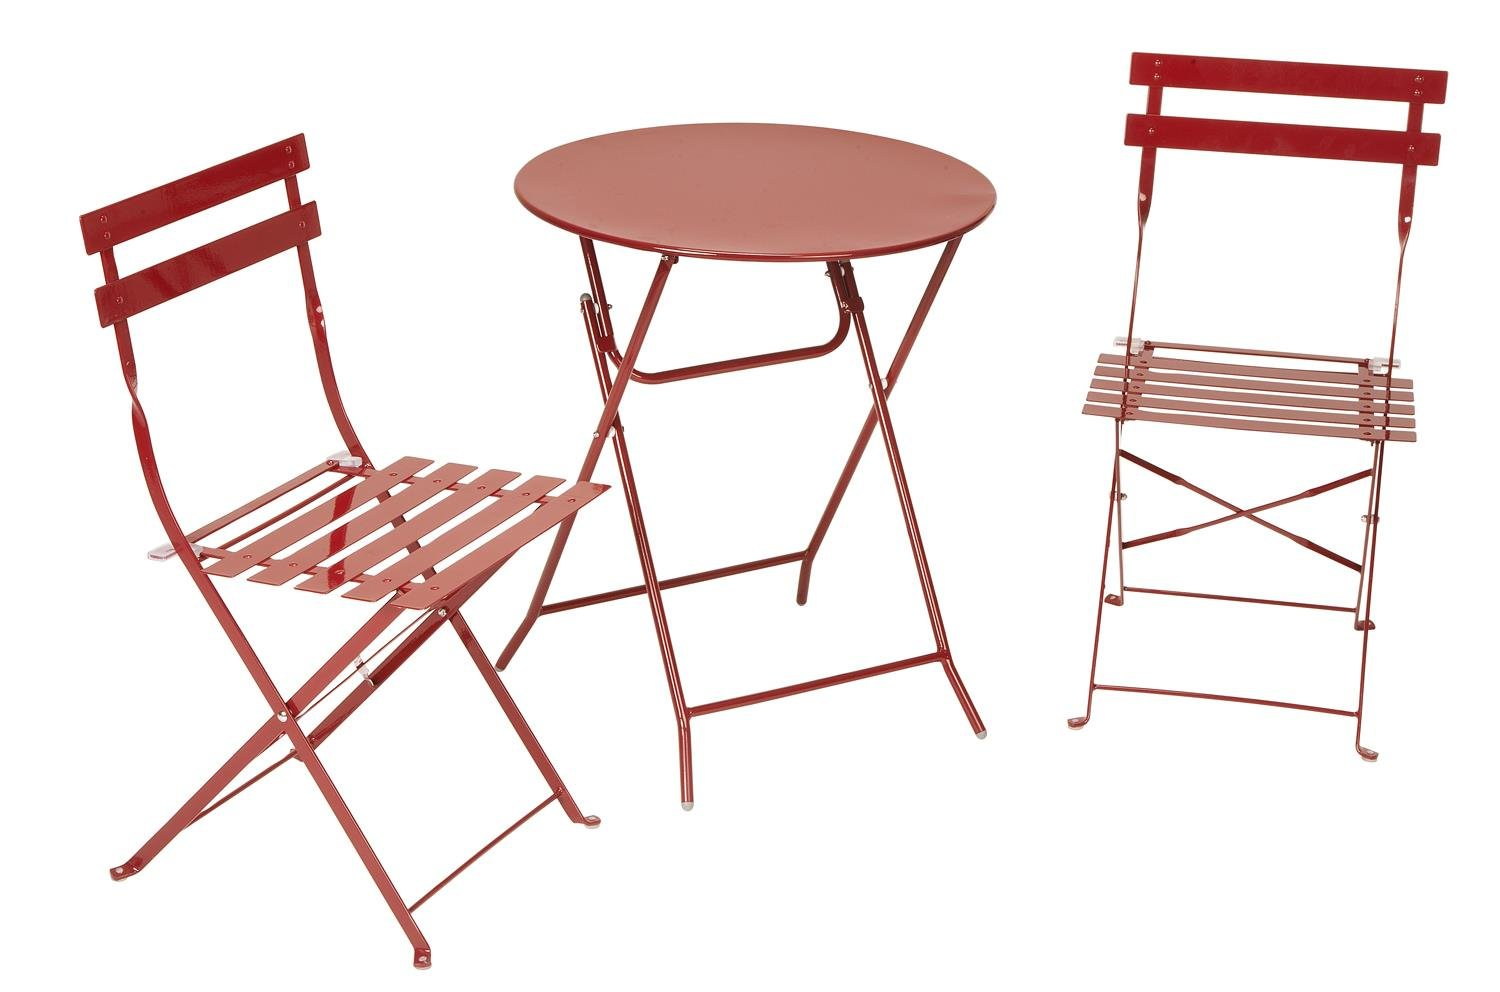 Amazon.com: Cosco 3 Piece Folding Bistro Style Patio Table And Chairs Set,  Red: Kitchen U0026 Dining